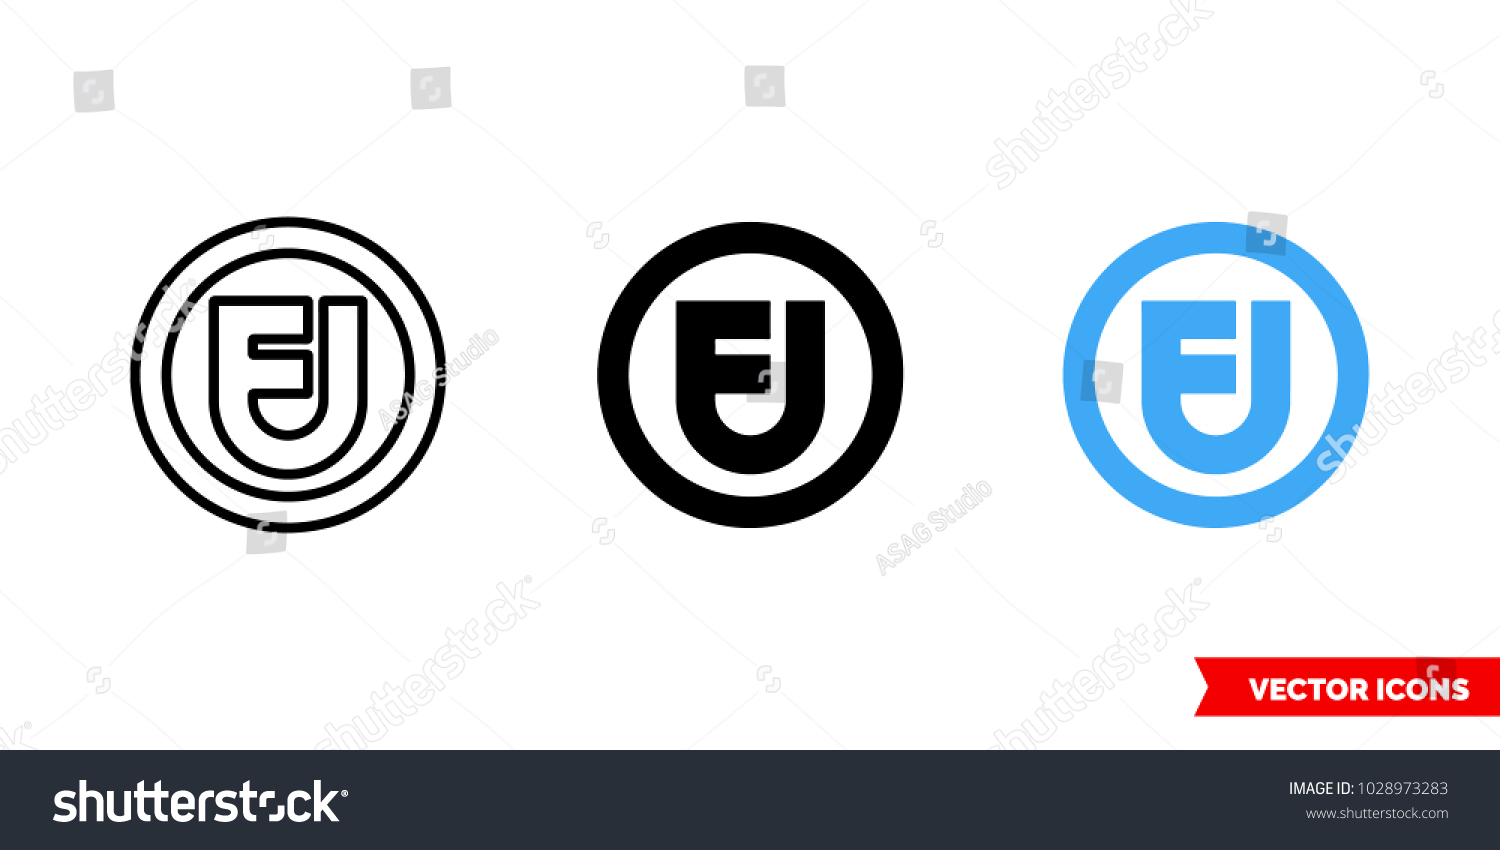 Fair use symbol icon 3 types stock vector 1028973283 shutterstock fair use symbol icon of 3 types color black and white outline buycottarizona Images